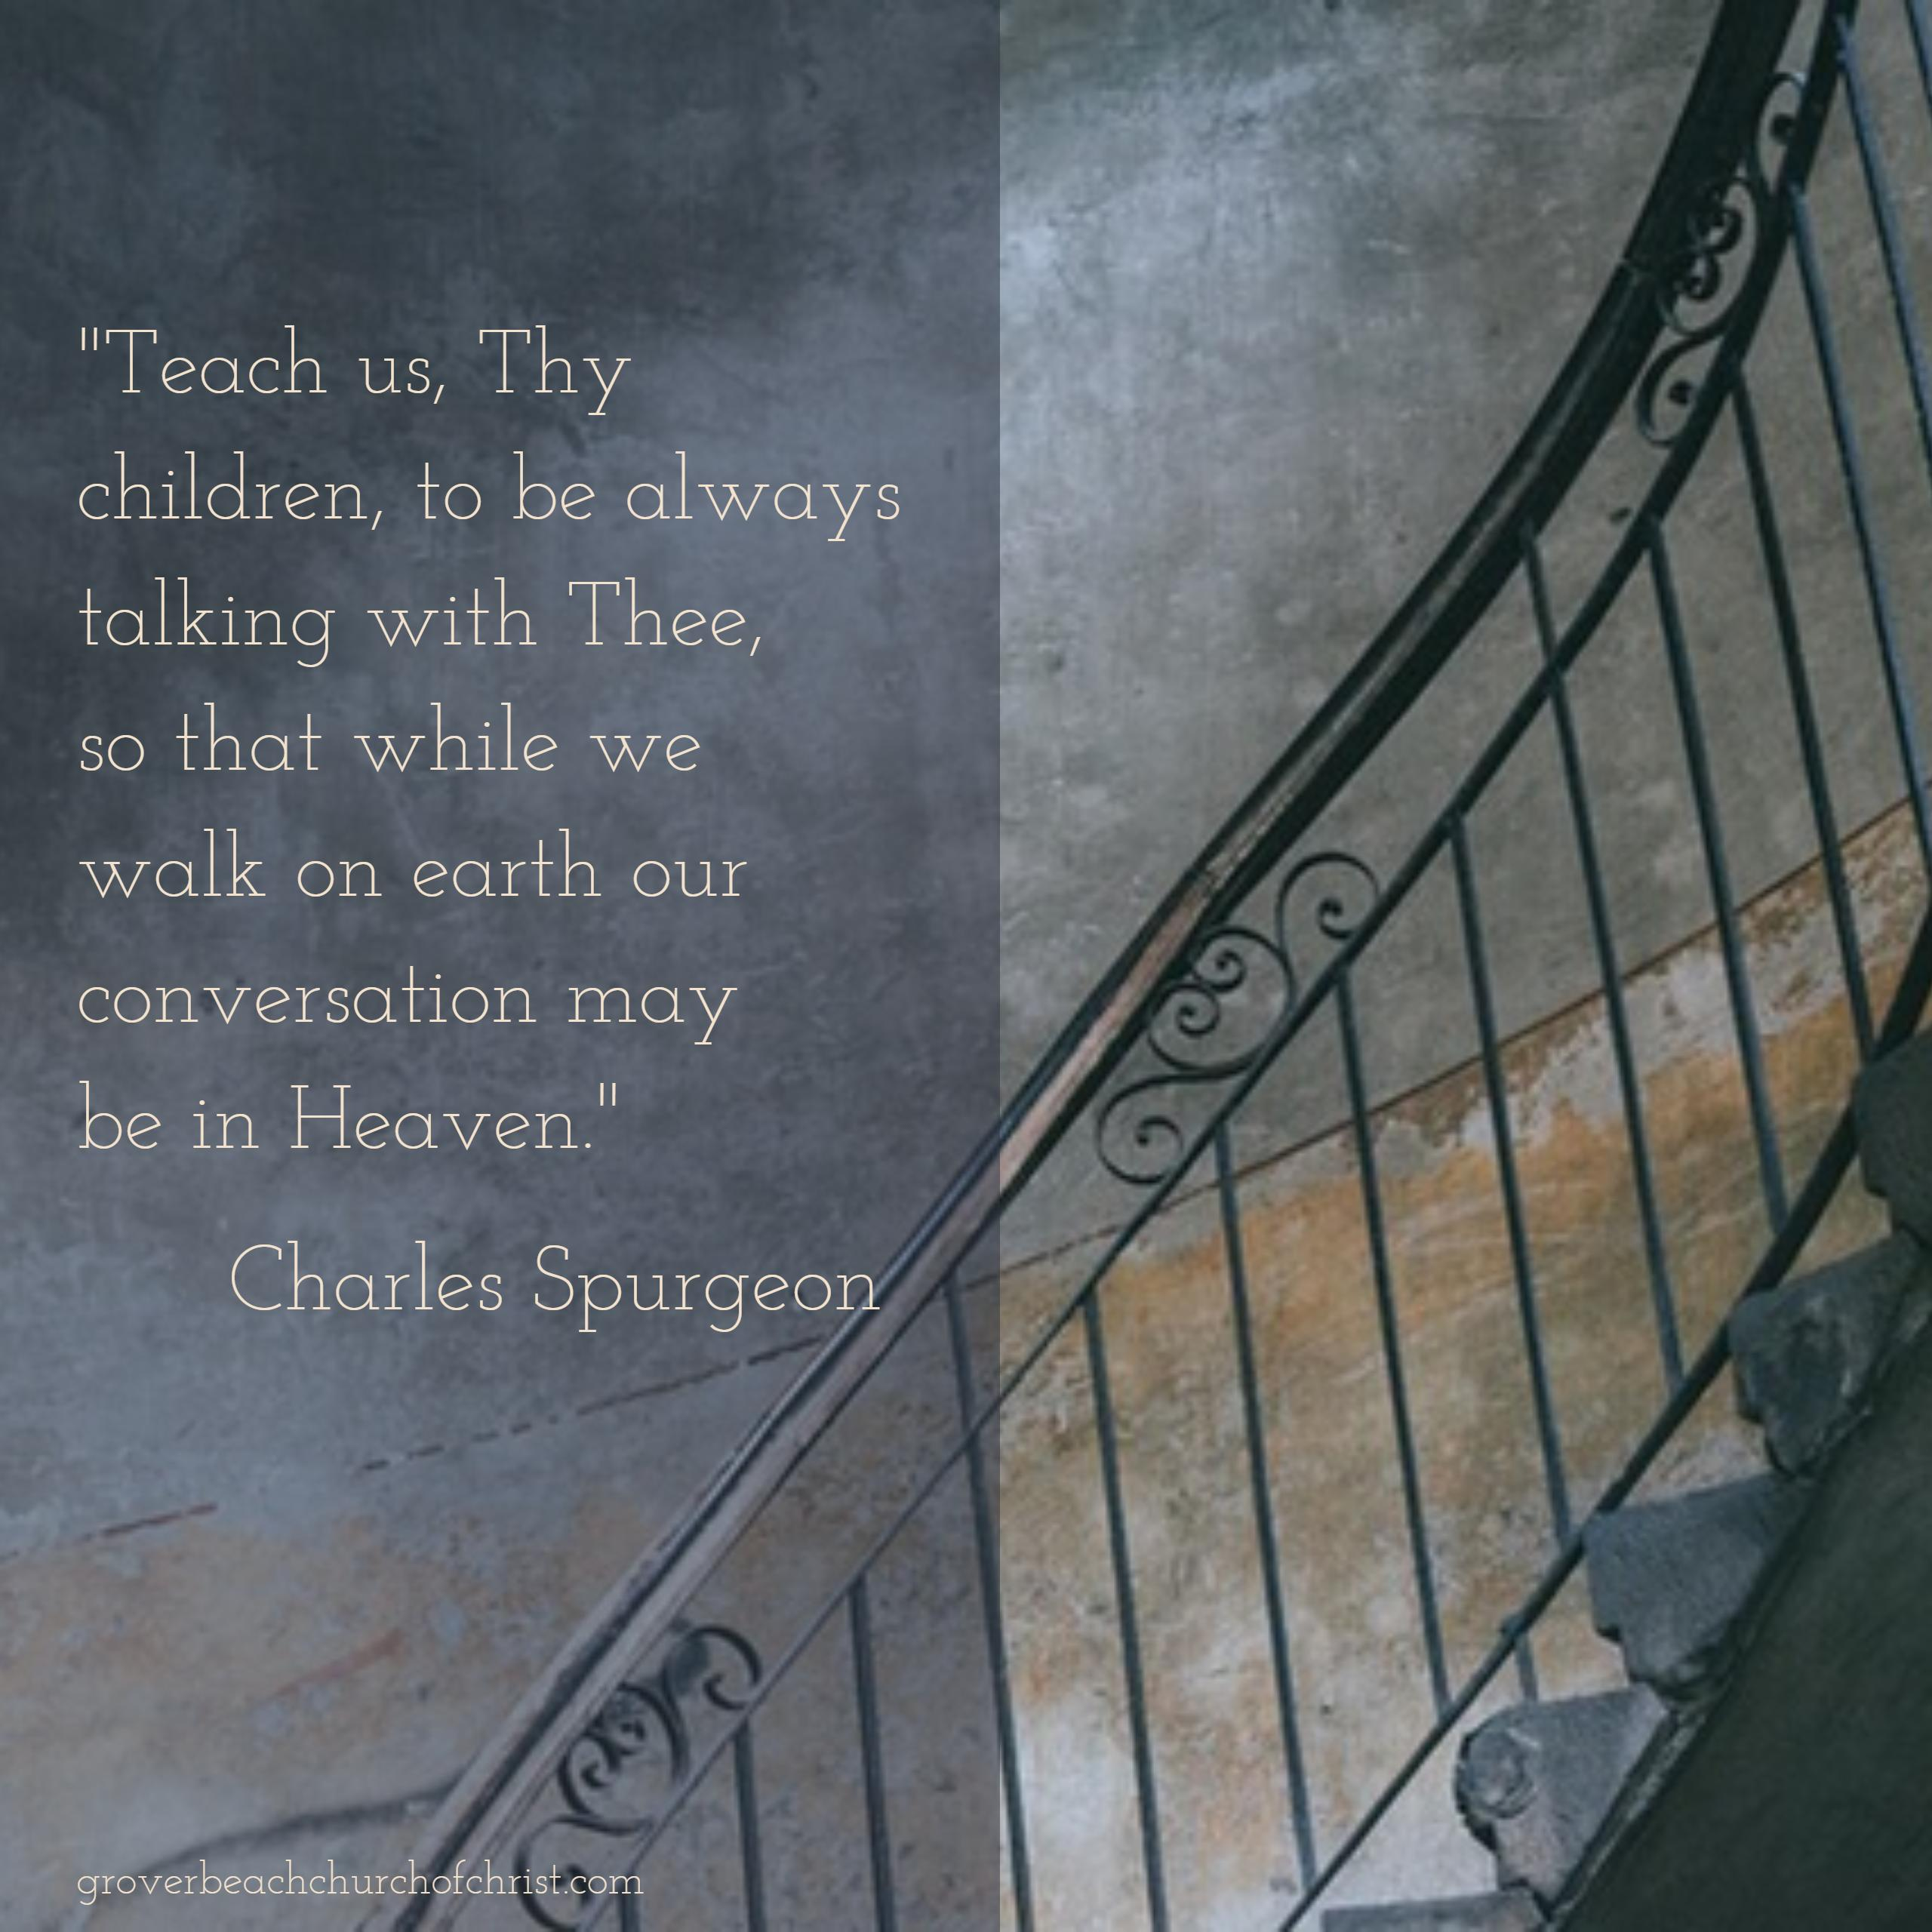 Spurgeon Teach us Thy children